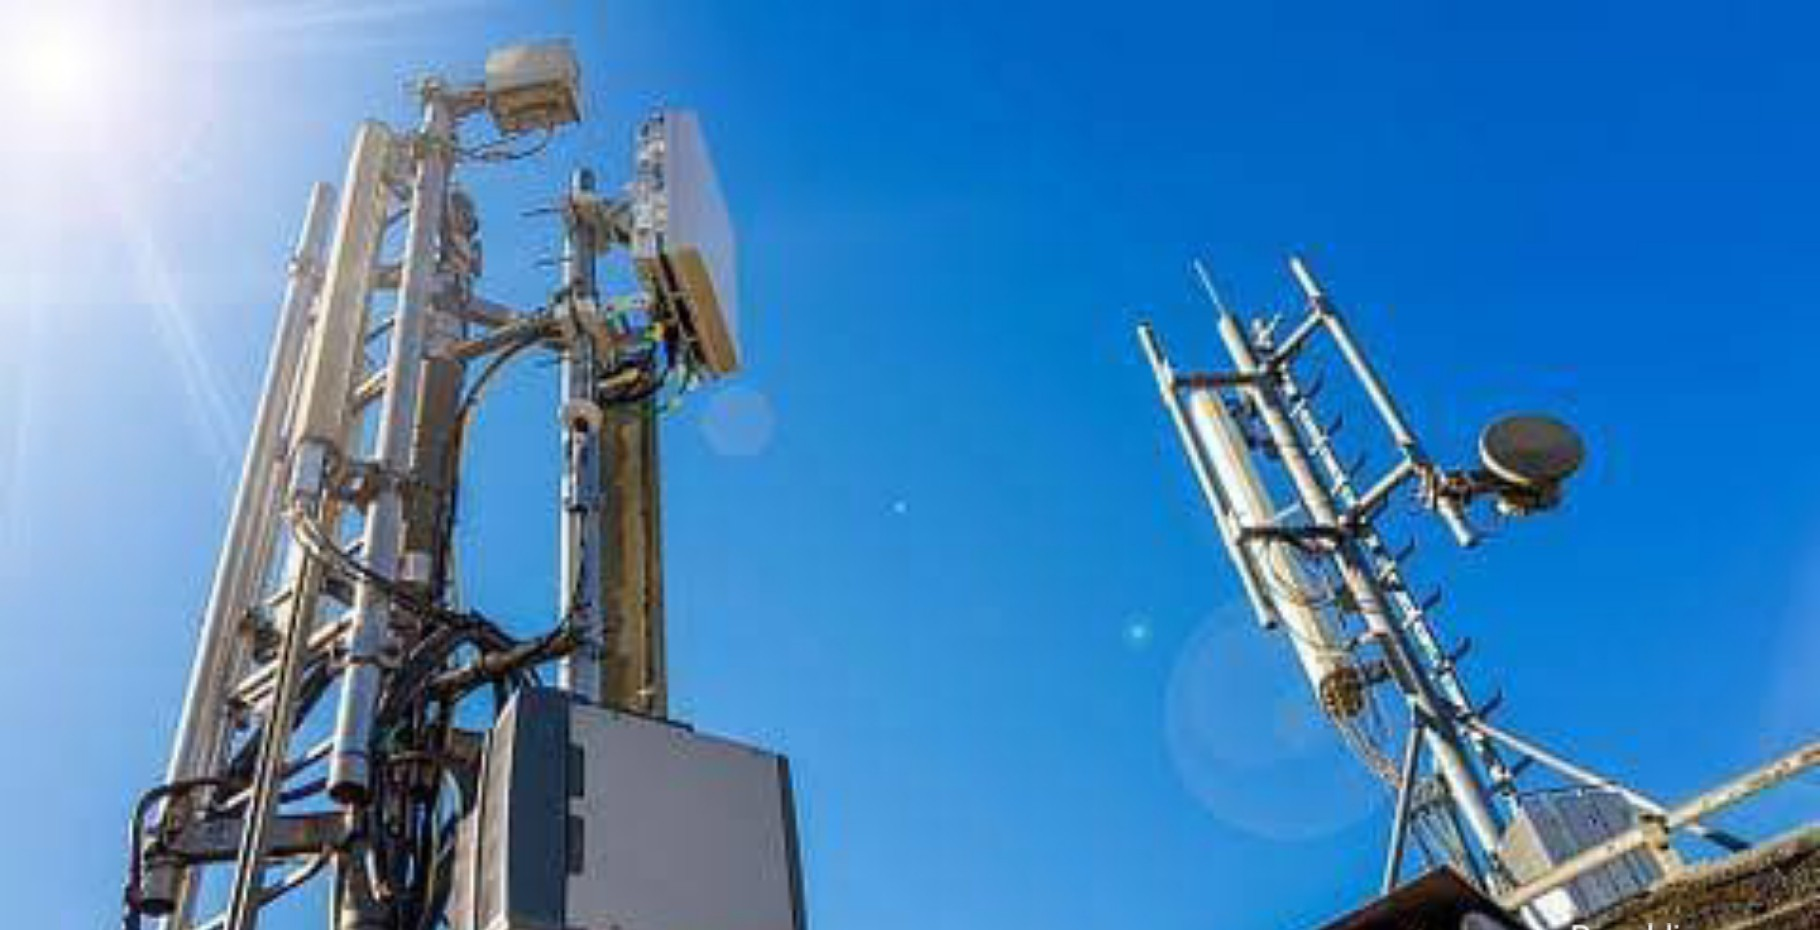 FG lists benefits of 5G network, insist on deployment